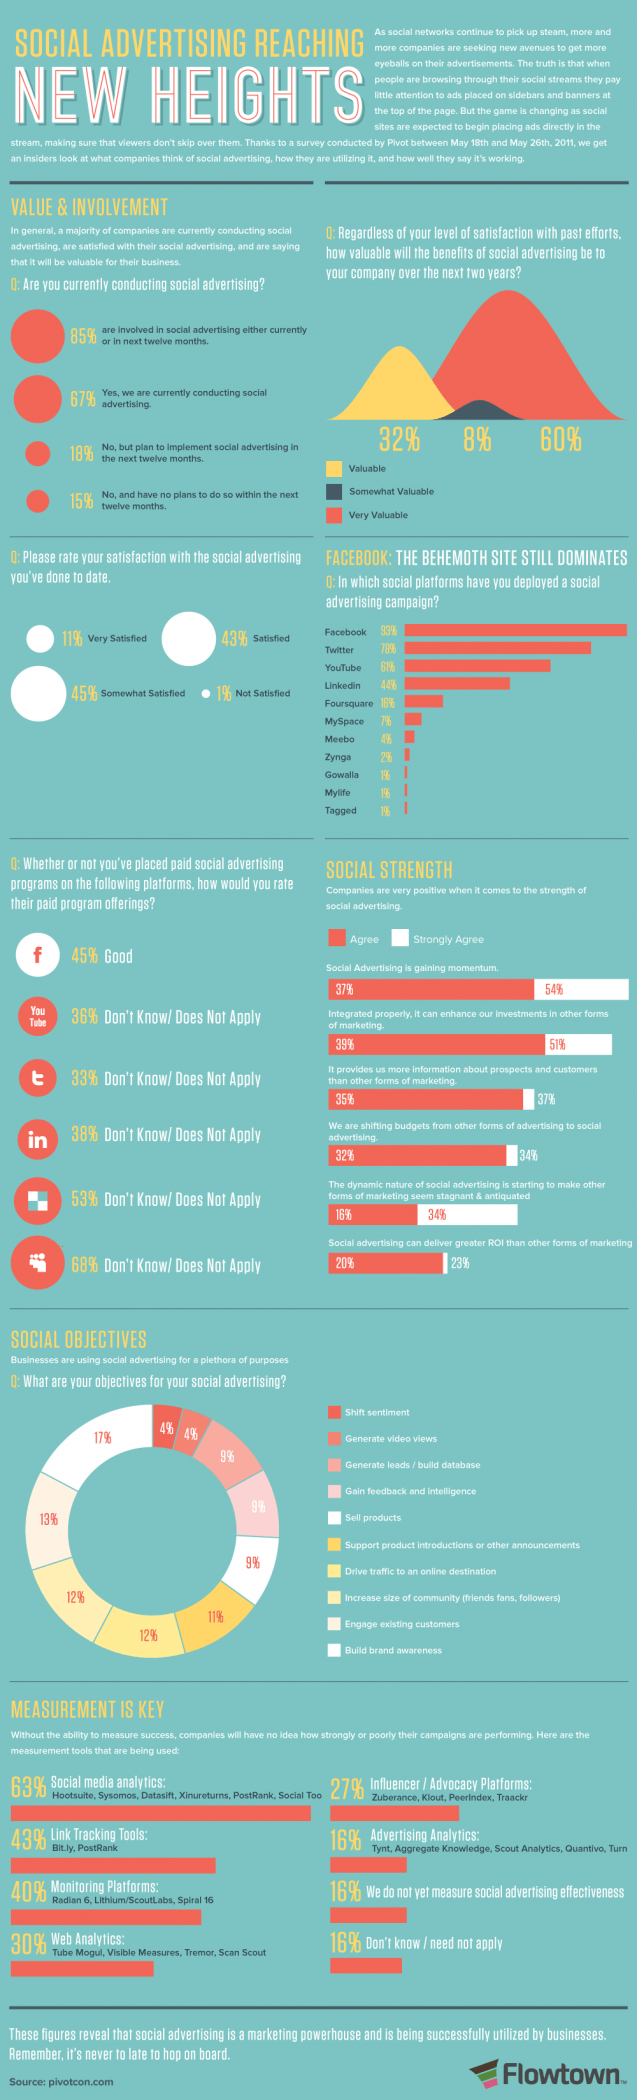 How Far Does Social Advertising Reach? [Infographic] by Flowtown